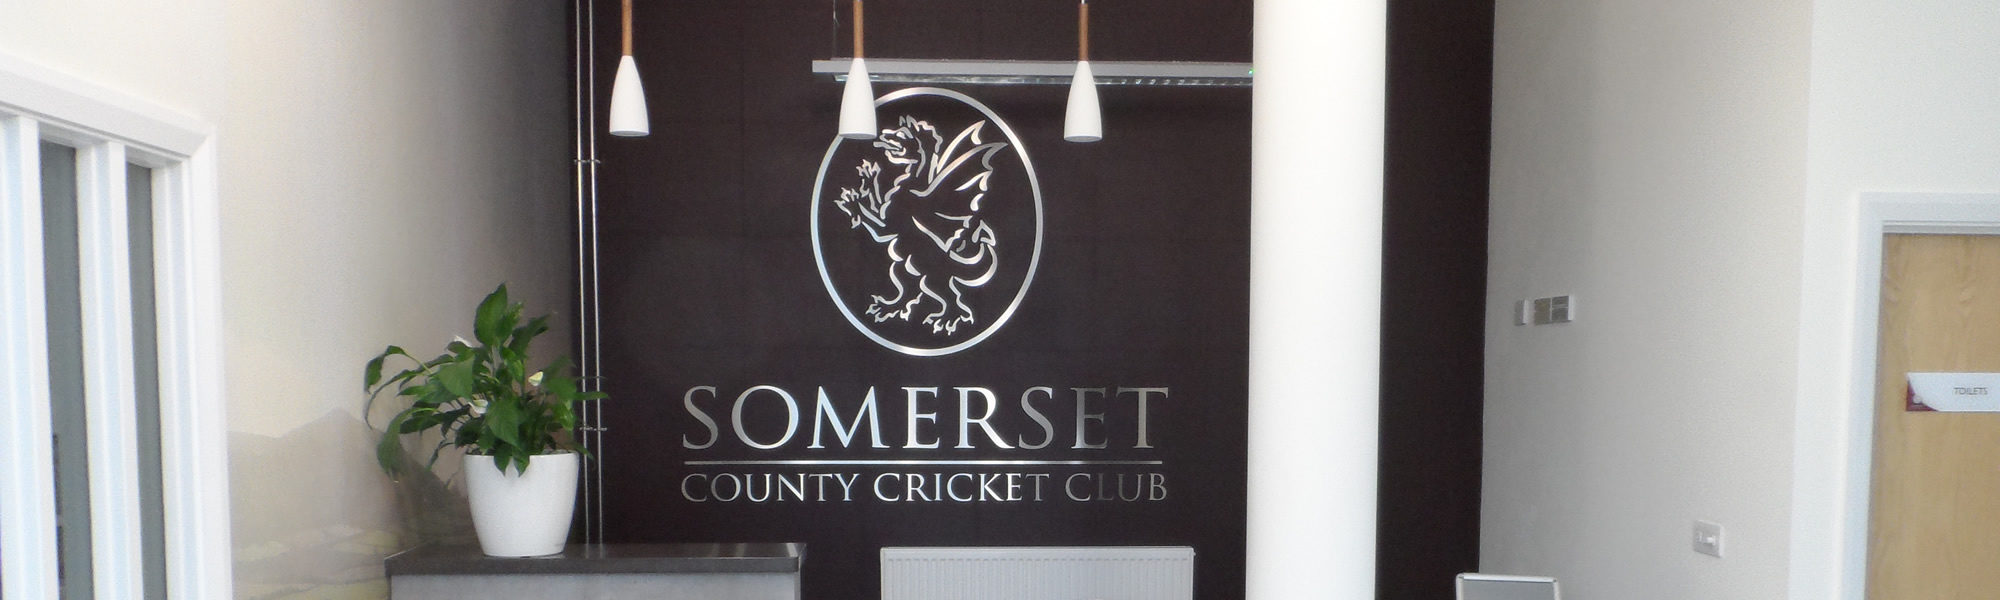 Somerset County Cricket Club Banner Image